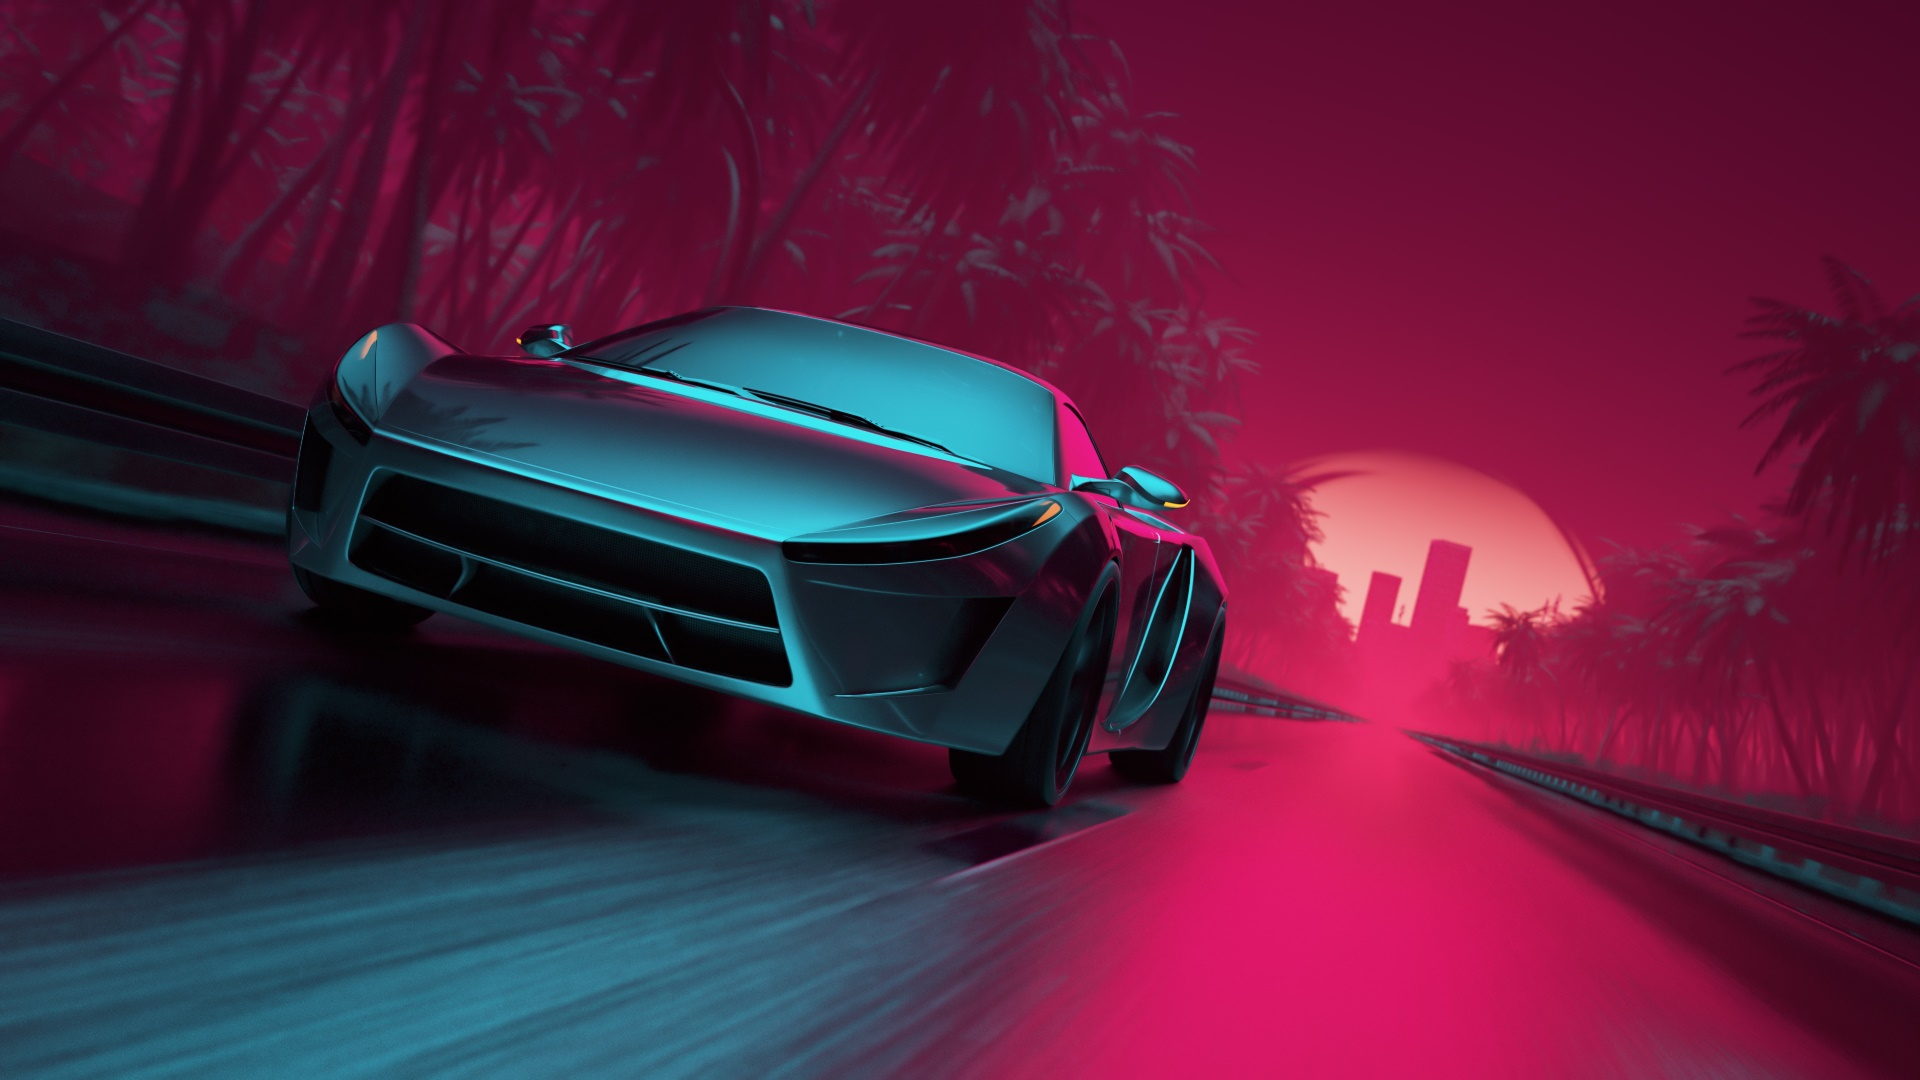 Sport Wallpaper For Iphone 7: 1080x1920 Neon Synthwave Sport Car Iphone 7,6s,6 Plus